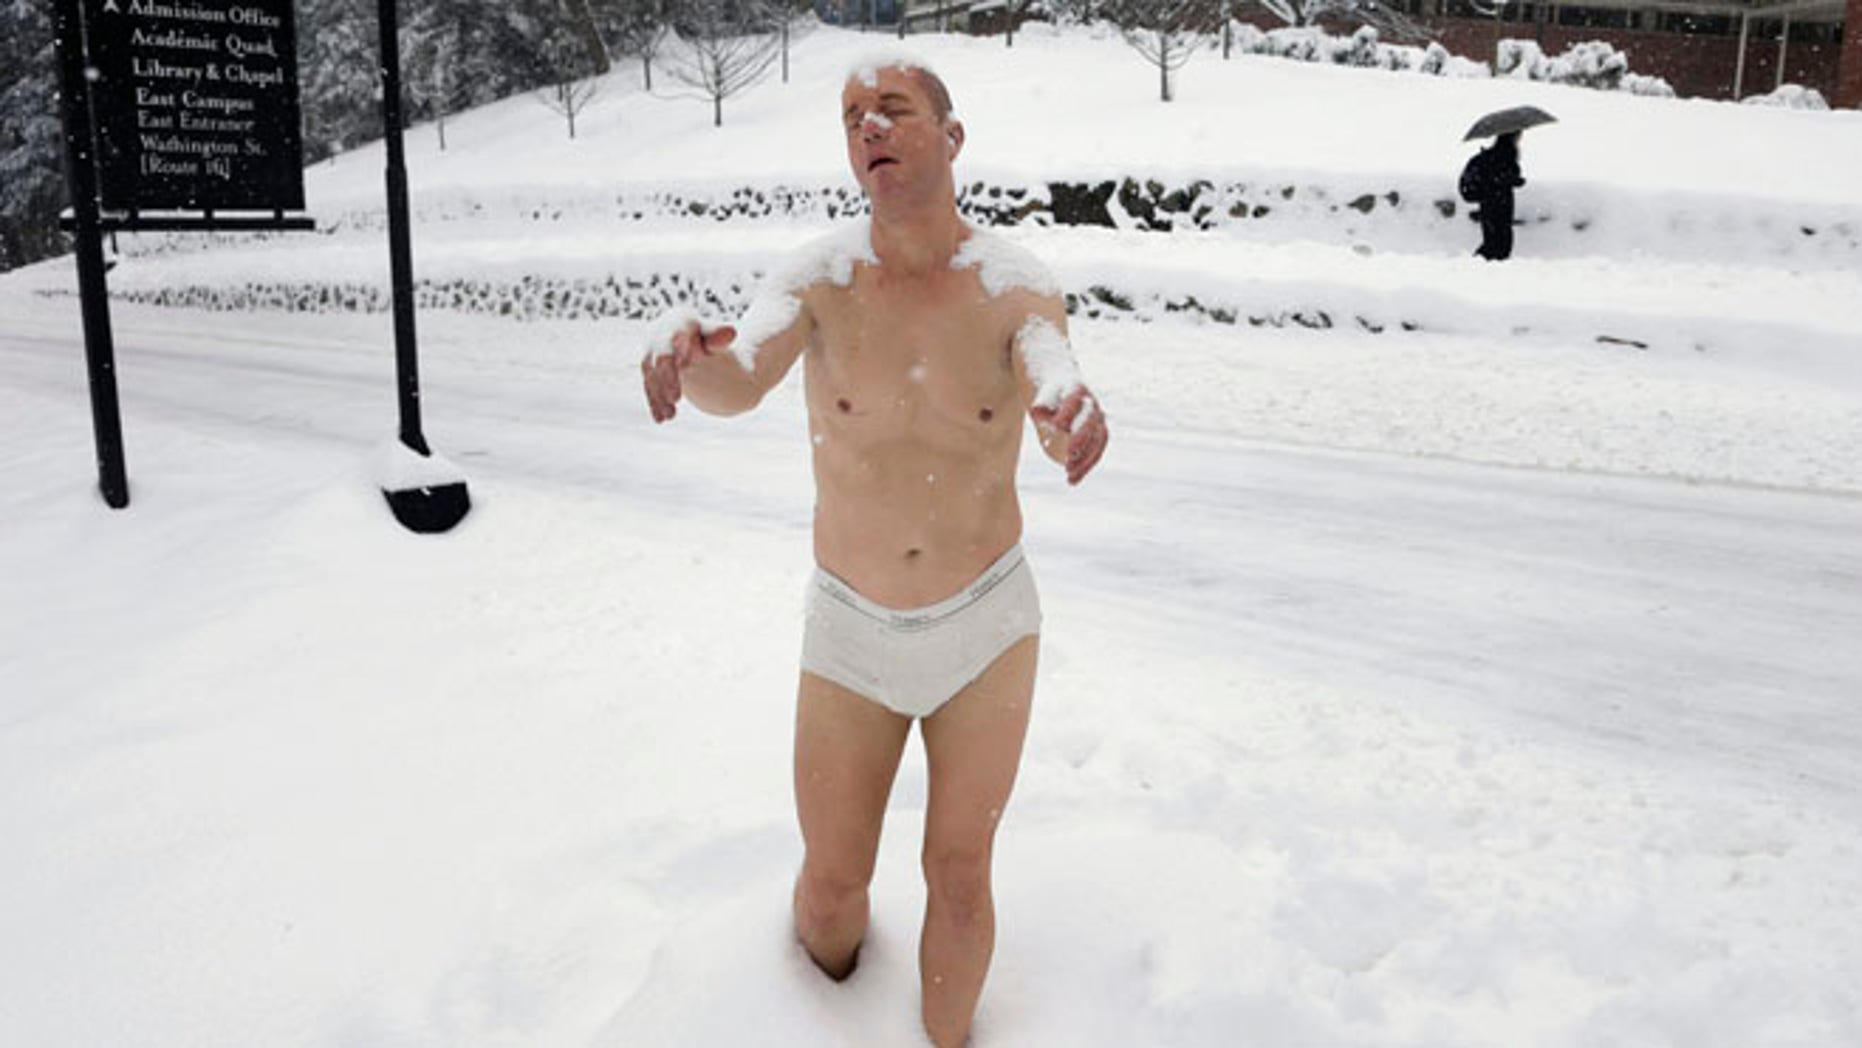 Feb. 5, 2014: A statue of a man sleepwalking in his underpants is surrounded by snow on the campus of Wellesley College, in Wellesley, Mass.